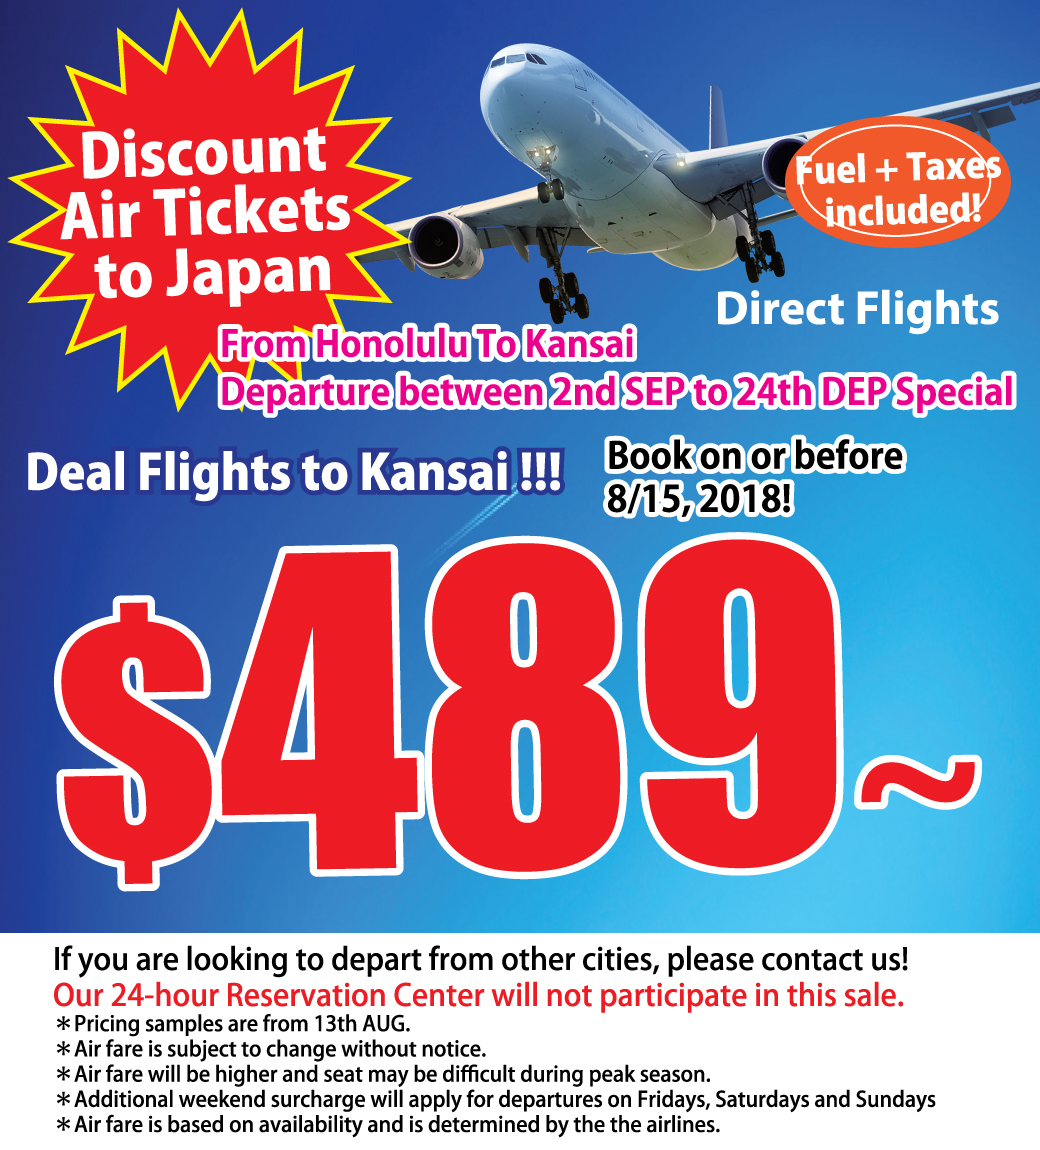 Discounted Air Tickets to JAPAN!! From $489